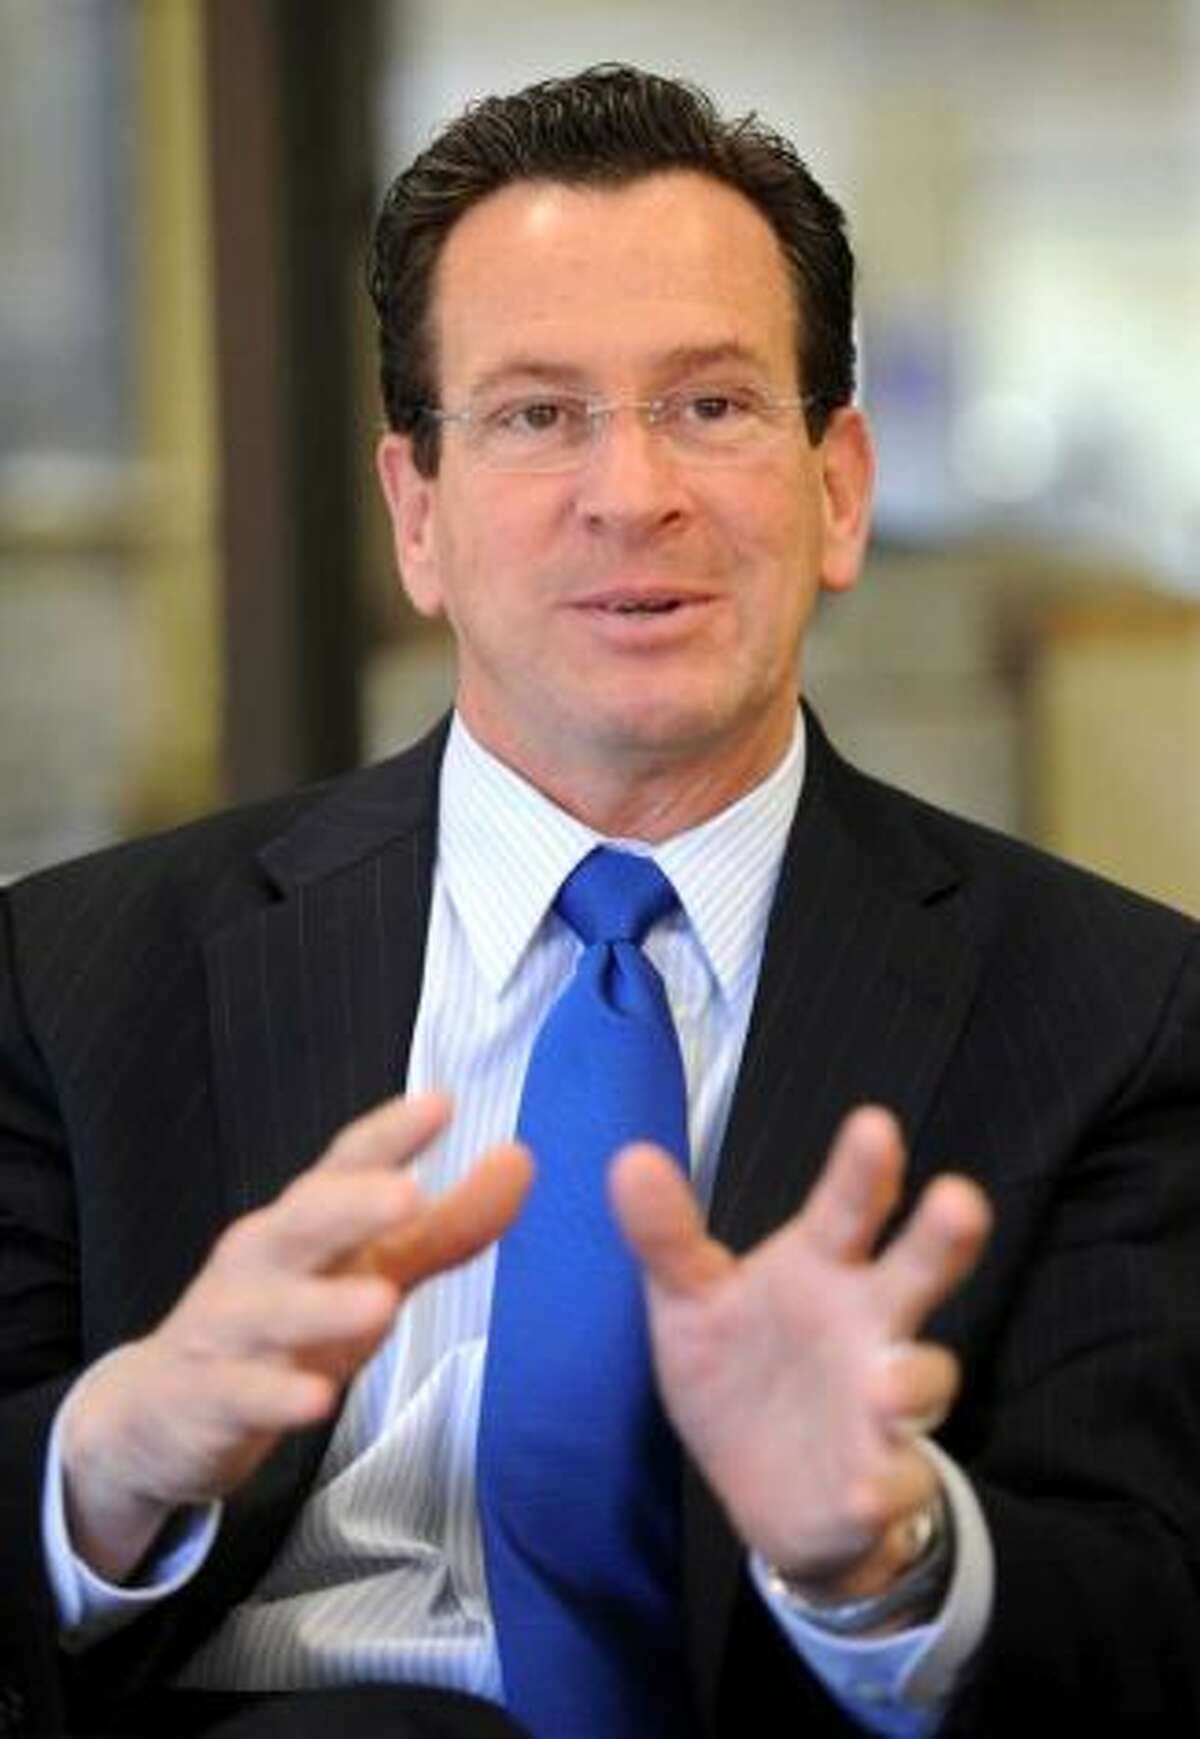 The University of Bridgeport's Undergraduate Commencement on May 10 will feature Governor Dannel P. Malloy as its commencement address speaker; he will receive an honorary Doctorate of Humane Letters.